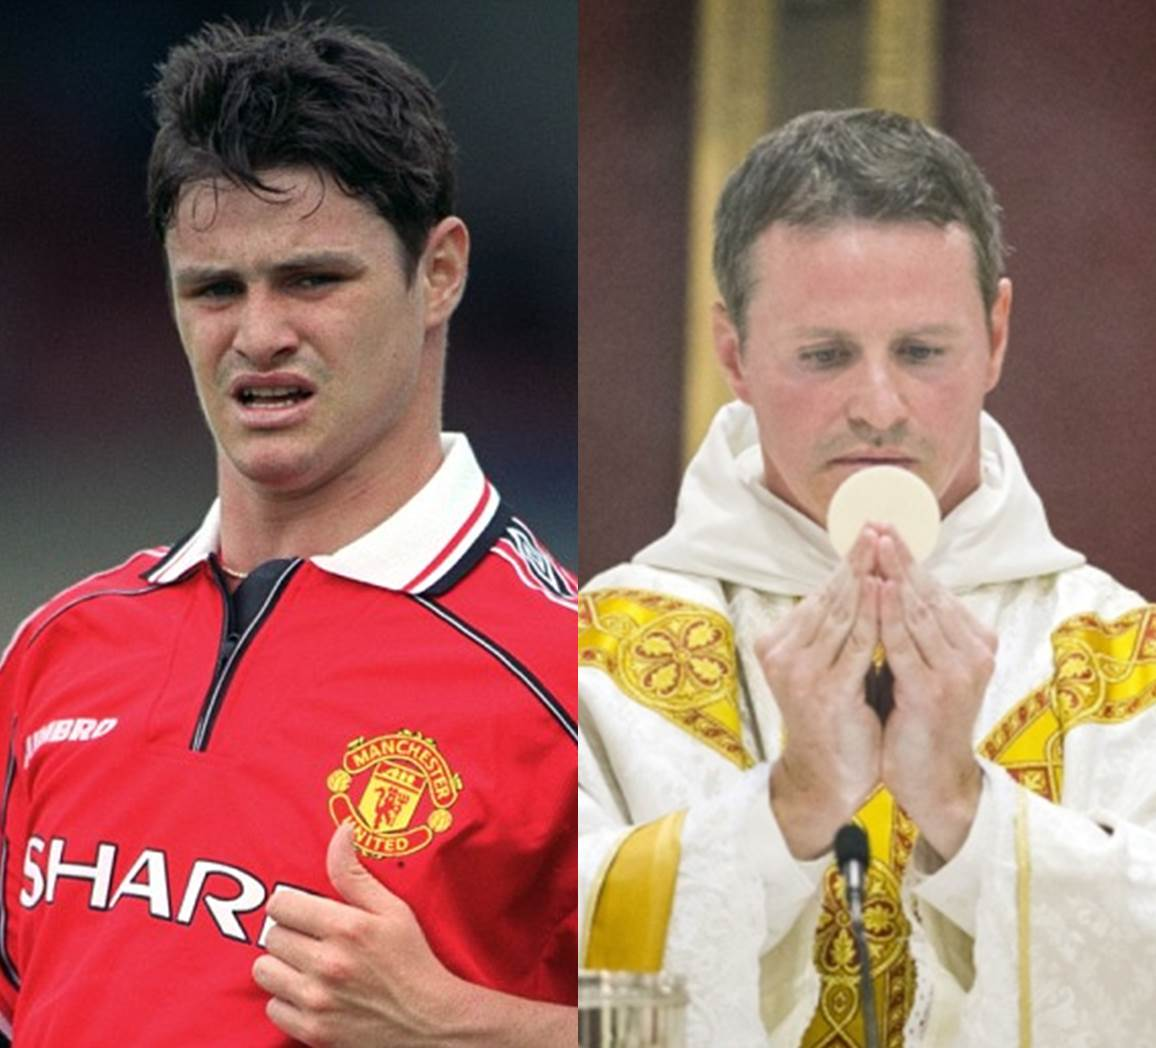 #AcciónLSR Philip Mulryne, de futbolista del United a Sacerdote https://t.co/QW29mHWzu7 https://t.co/Xs6FfqTtVa